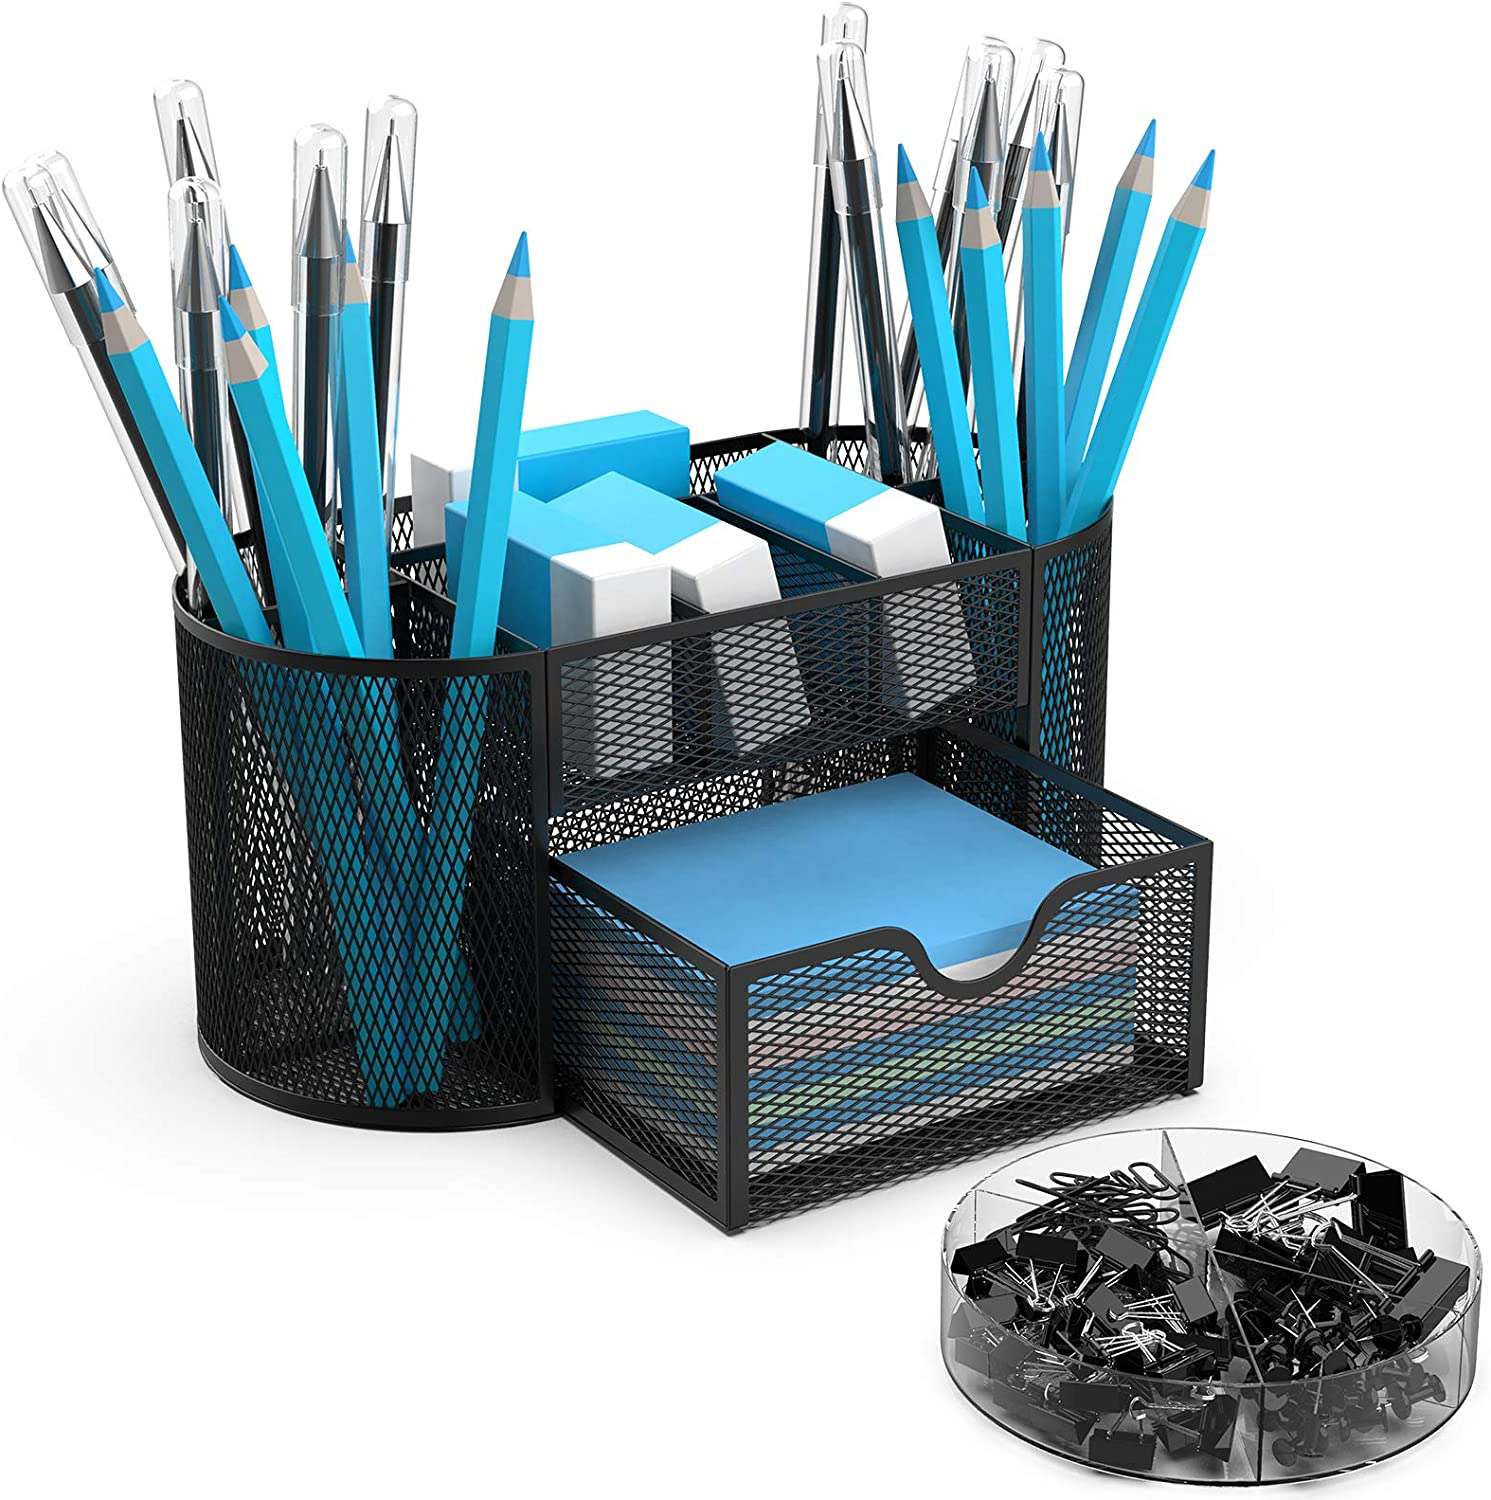 BYLaconic Office Desk Organizer Mesh, with 9 Compartments Multifunctional Desk Pen Holder Organizer with Accessories Clips Sets for Office/Classroom/Home - Black